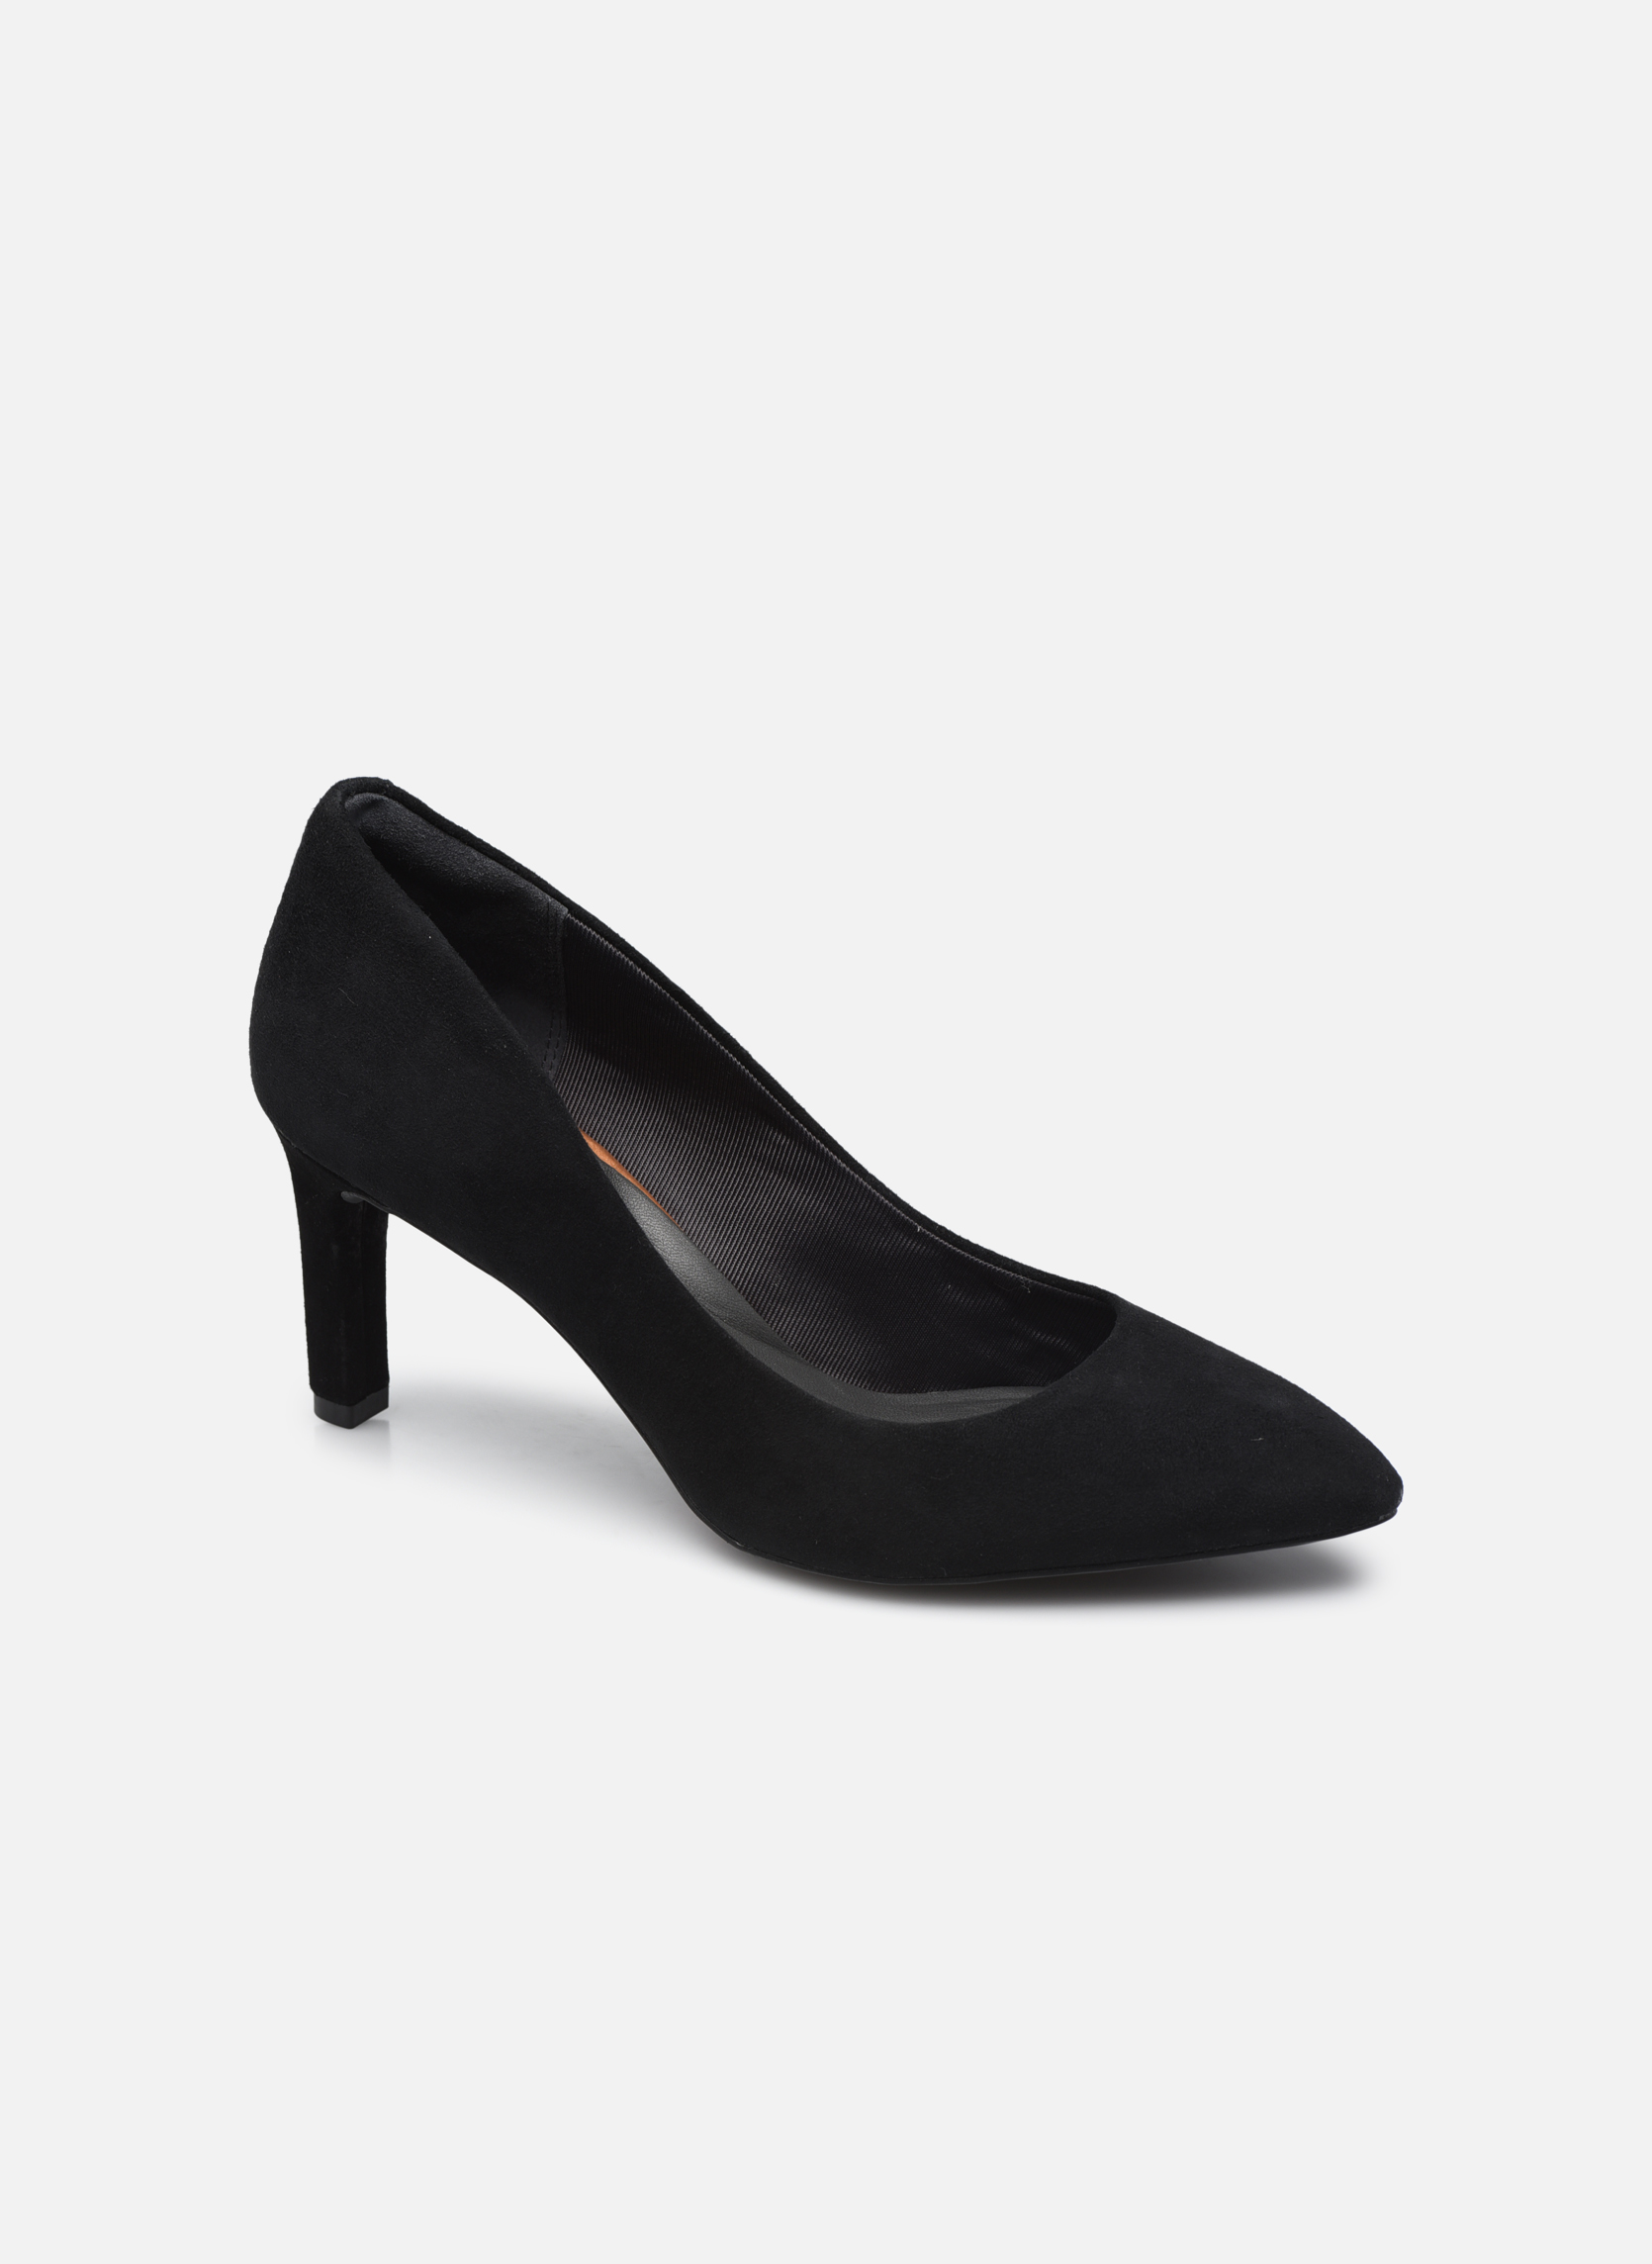 TM Valerie Pump